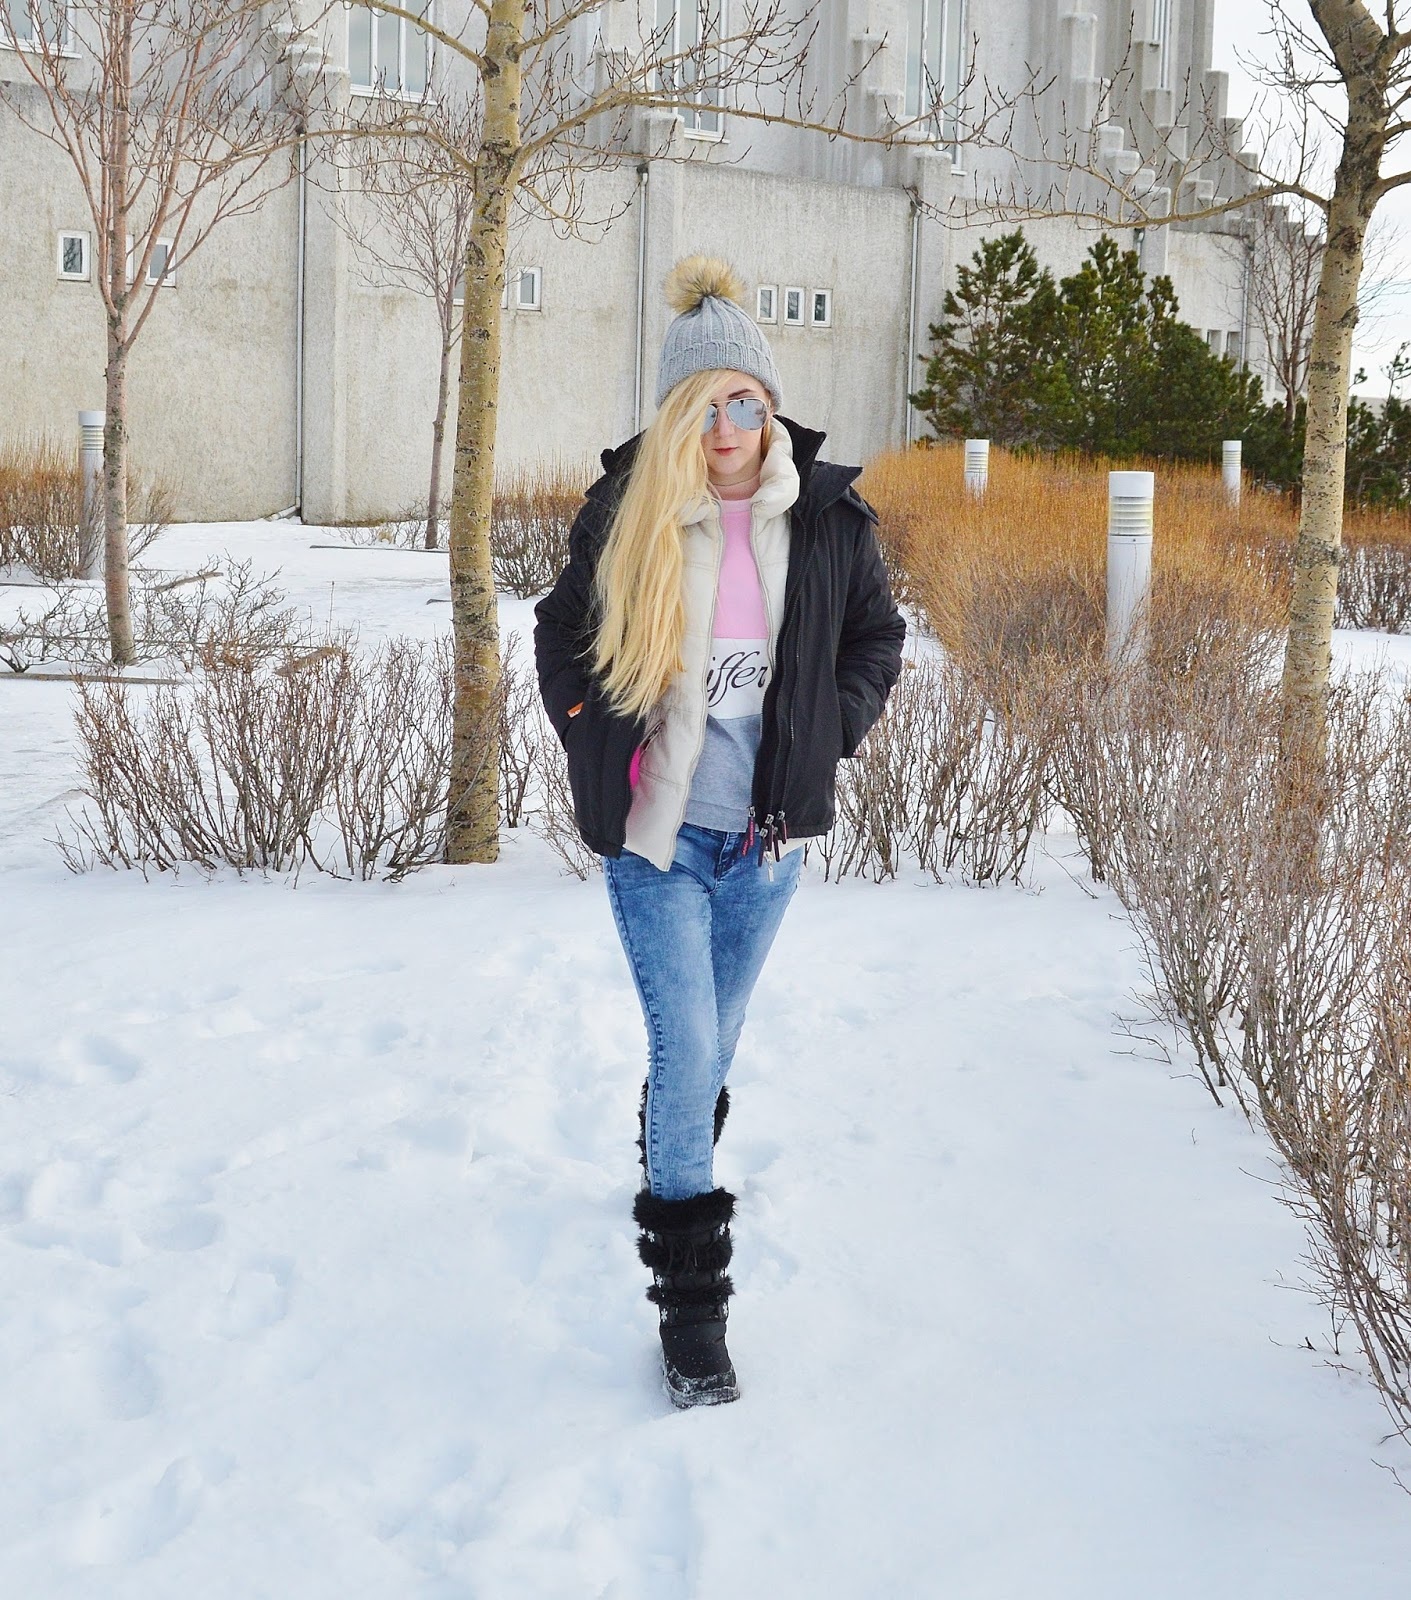 Iceland Winter Fashion: Fashionista Chic